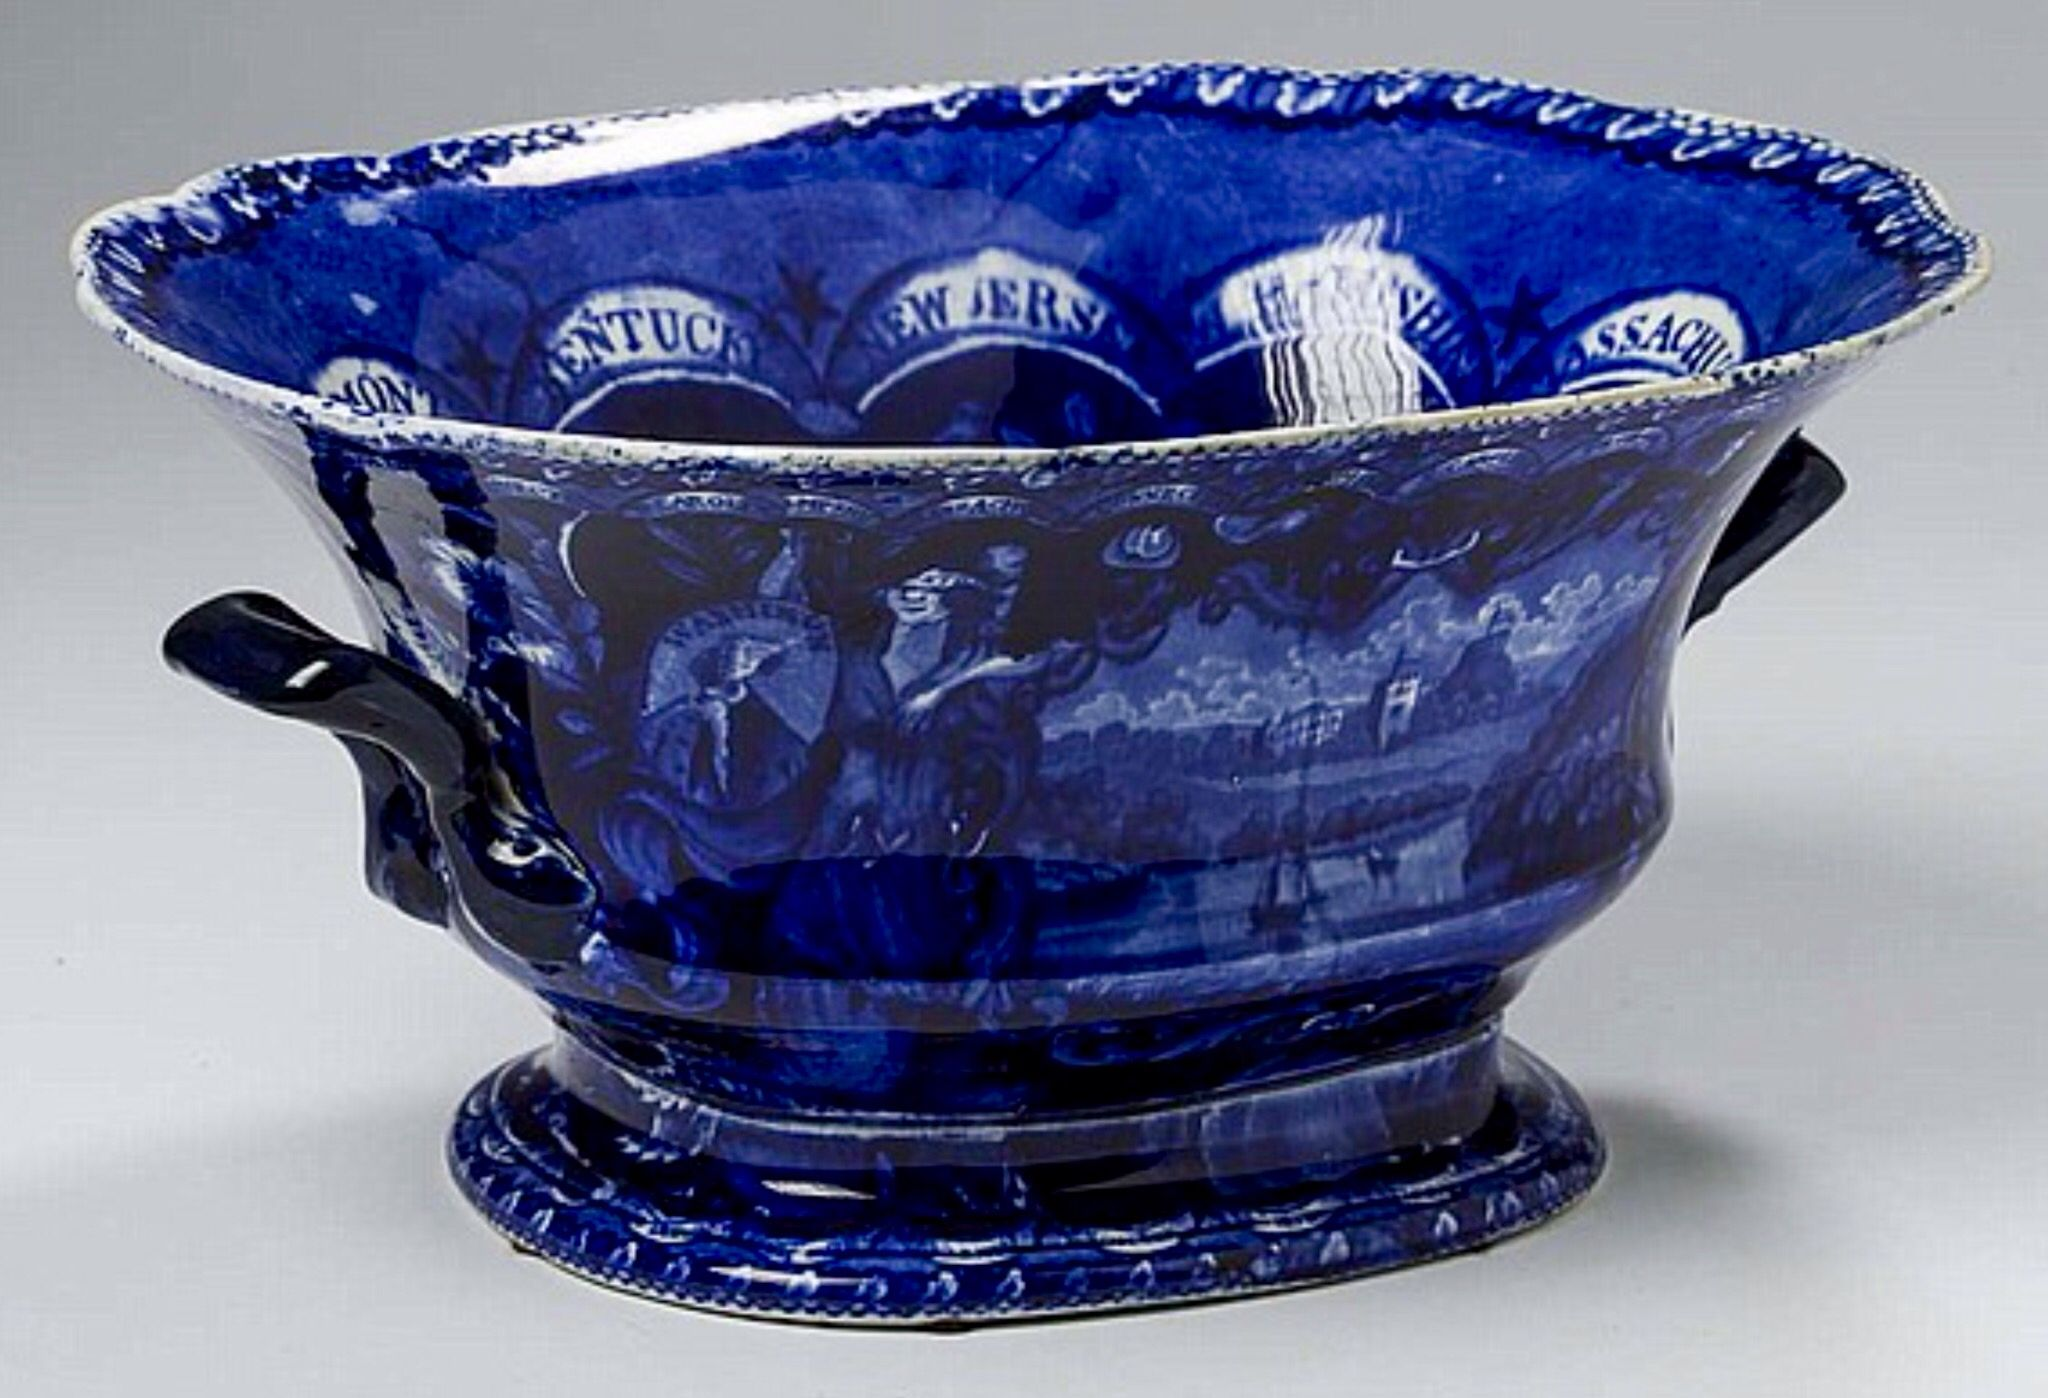 "Northeast Auctions - THE COLLECTION OF CHESTER CREUTZBURG AND DAVID MARTIN - PART ONE. 3/5/16. Lot 60: STATES, AMERICA AND INDEPENDENCE SERIES: MANSION, SMALL BOAT FLYING A FLAG IN FOREGROUND,' STAFFORDSHIRE DARK BLUE TRANSFER-PRINTED FOOTED COMPOTE, JAMES & RALPH CLEWS, COBRIDGE, 1819-36. Estimated Price: $1,200 - $1,800. Realized: $2,280 (1,900). Description: Early impressed crowned ""CLEWS WARRANTED STAFFORDSHIRE"" factory mark. Length 10 3/4 inches. Provenance: William & Teresa Kurau…"